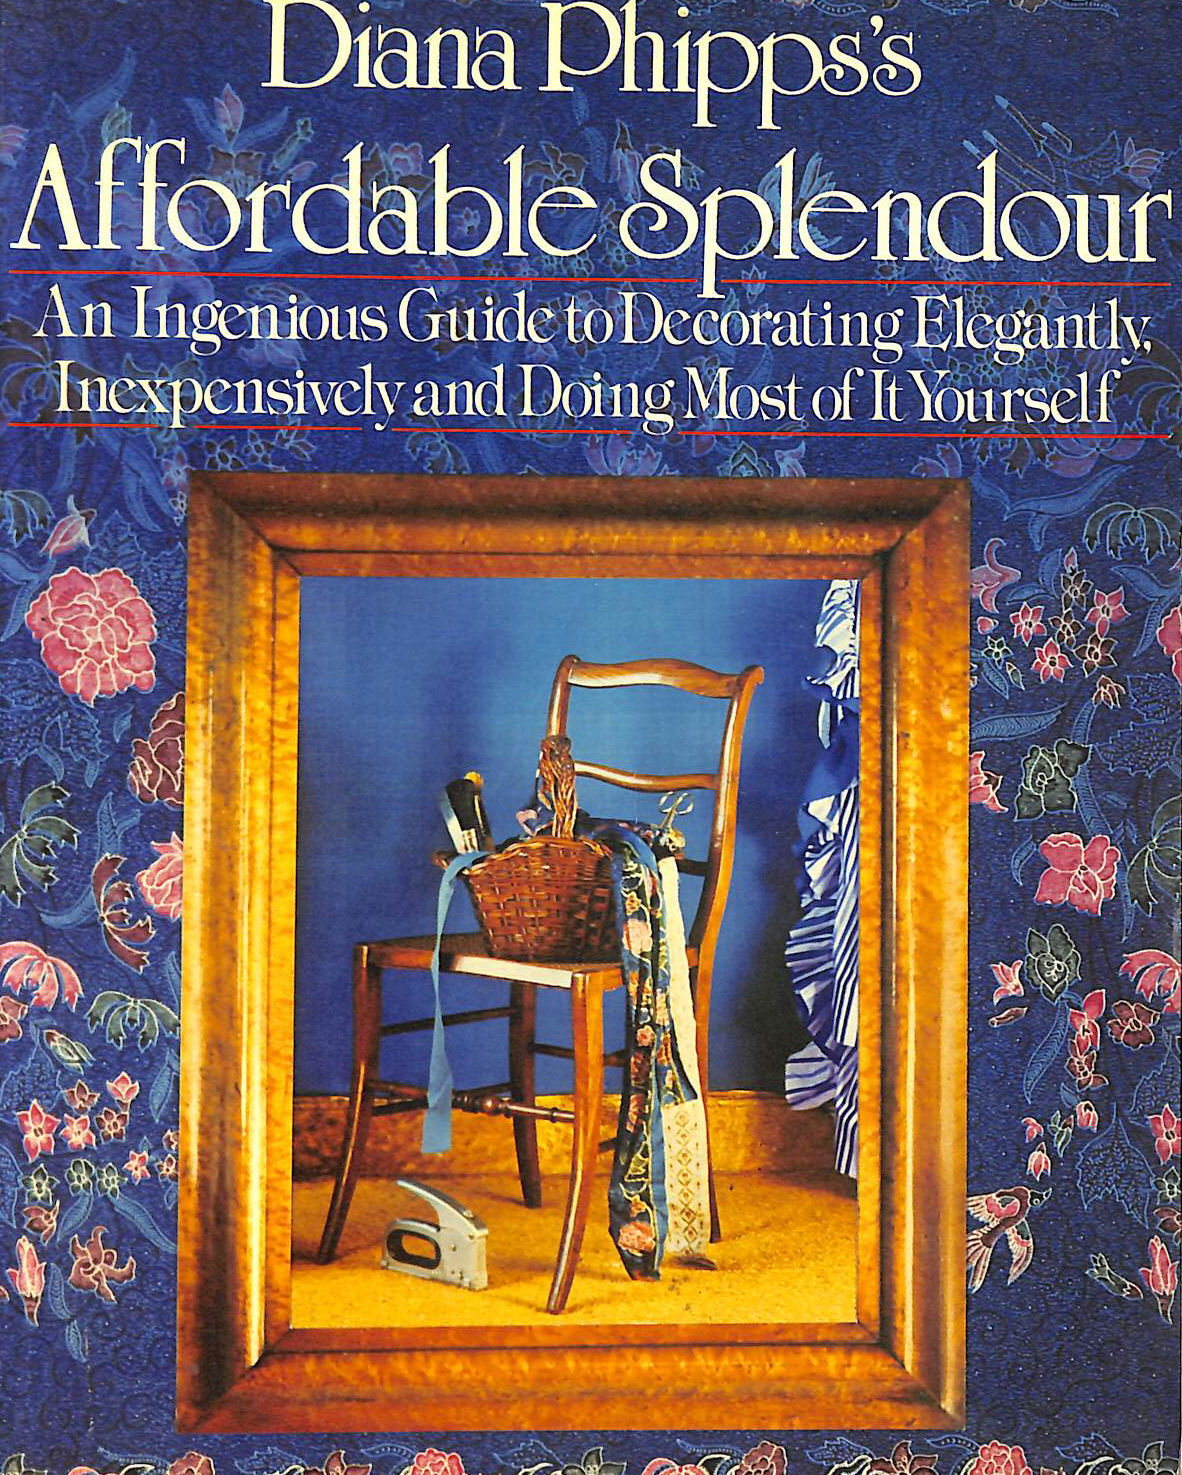 Image for Affordable Splendour: Ingenious Guide to Decorating Elegantly, Inexpensively and Doing Most of it Yourself